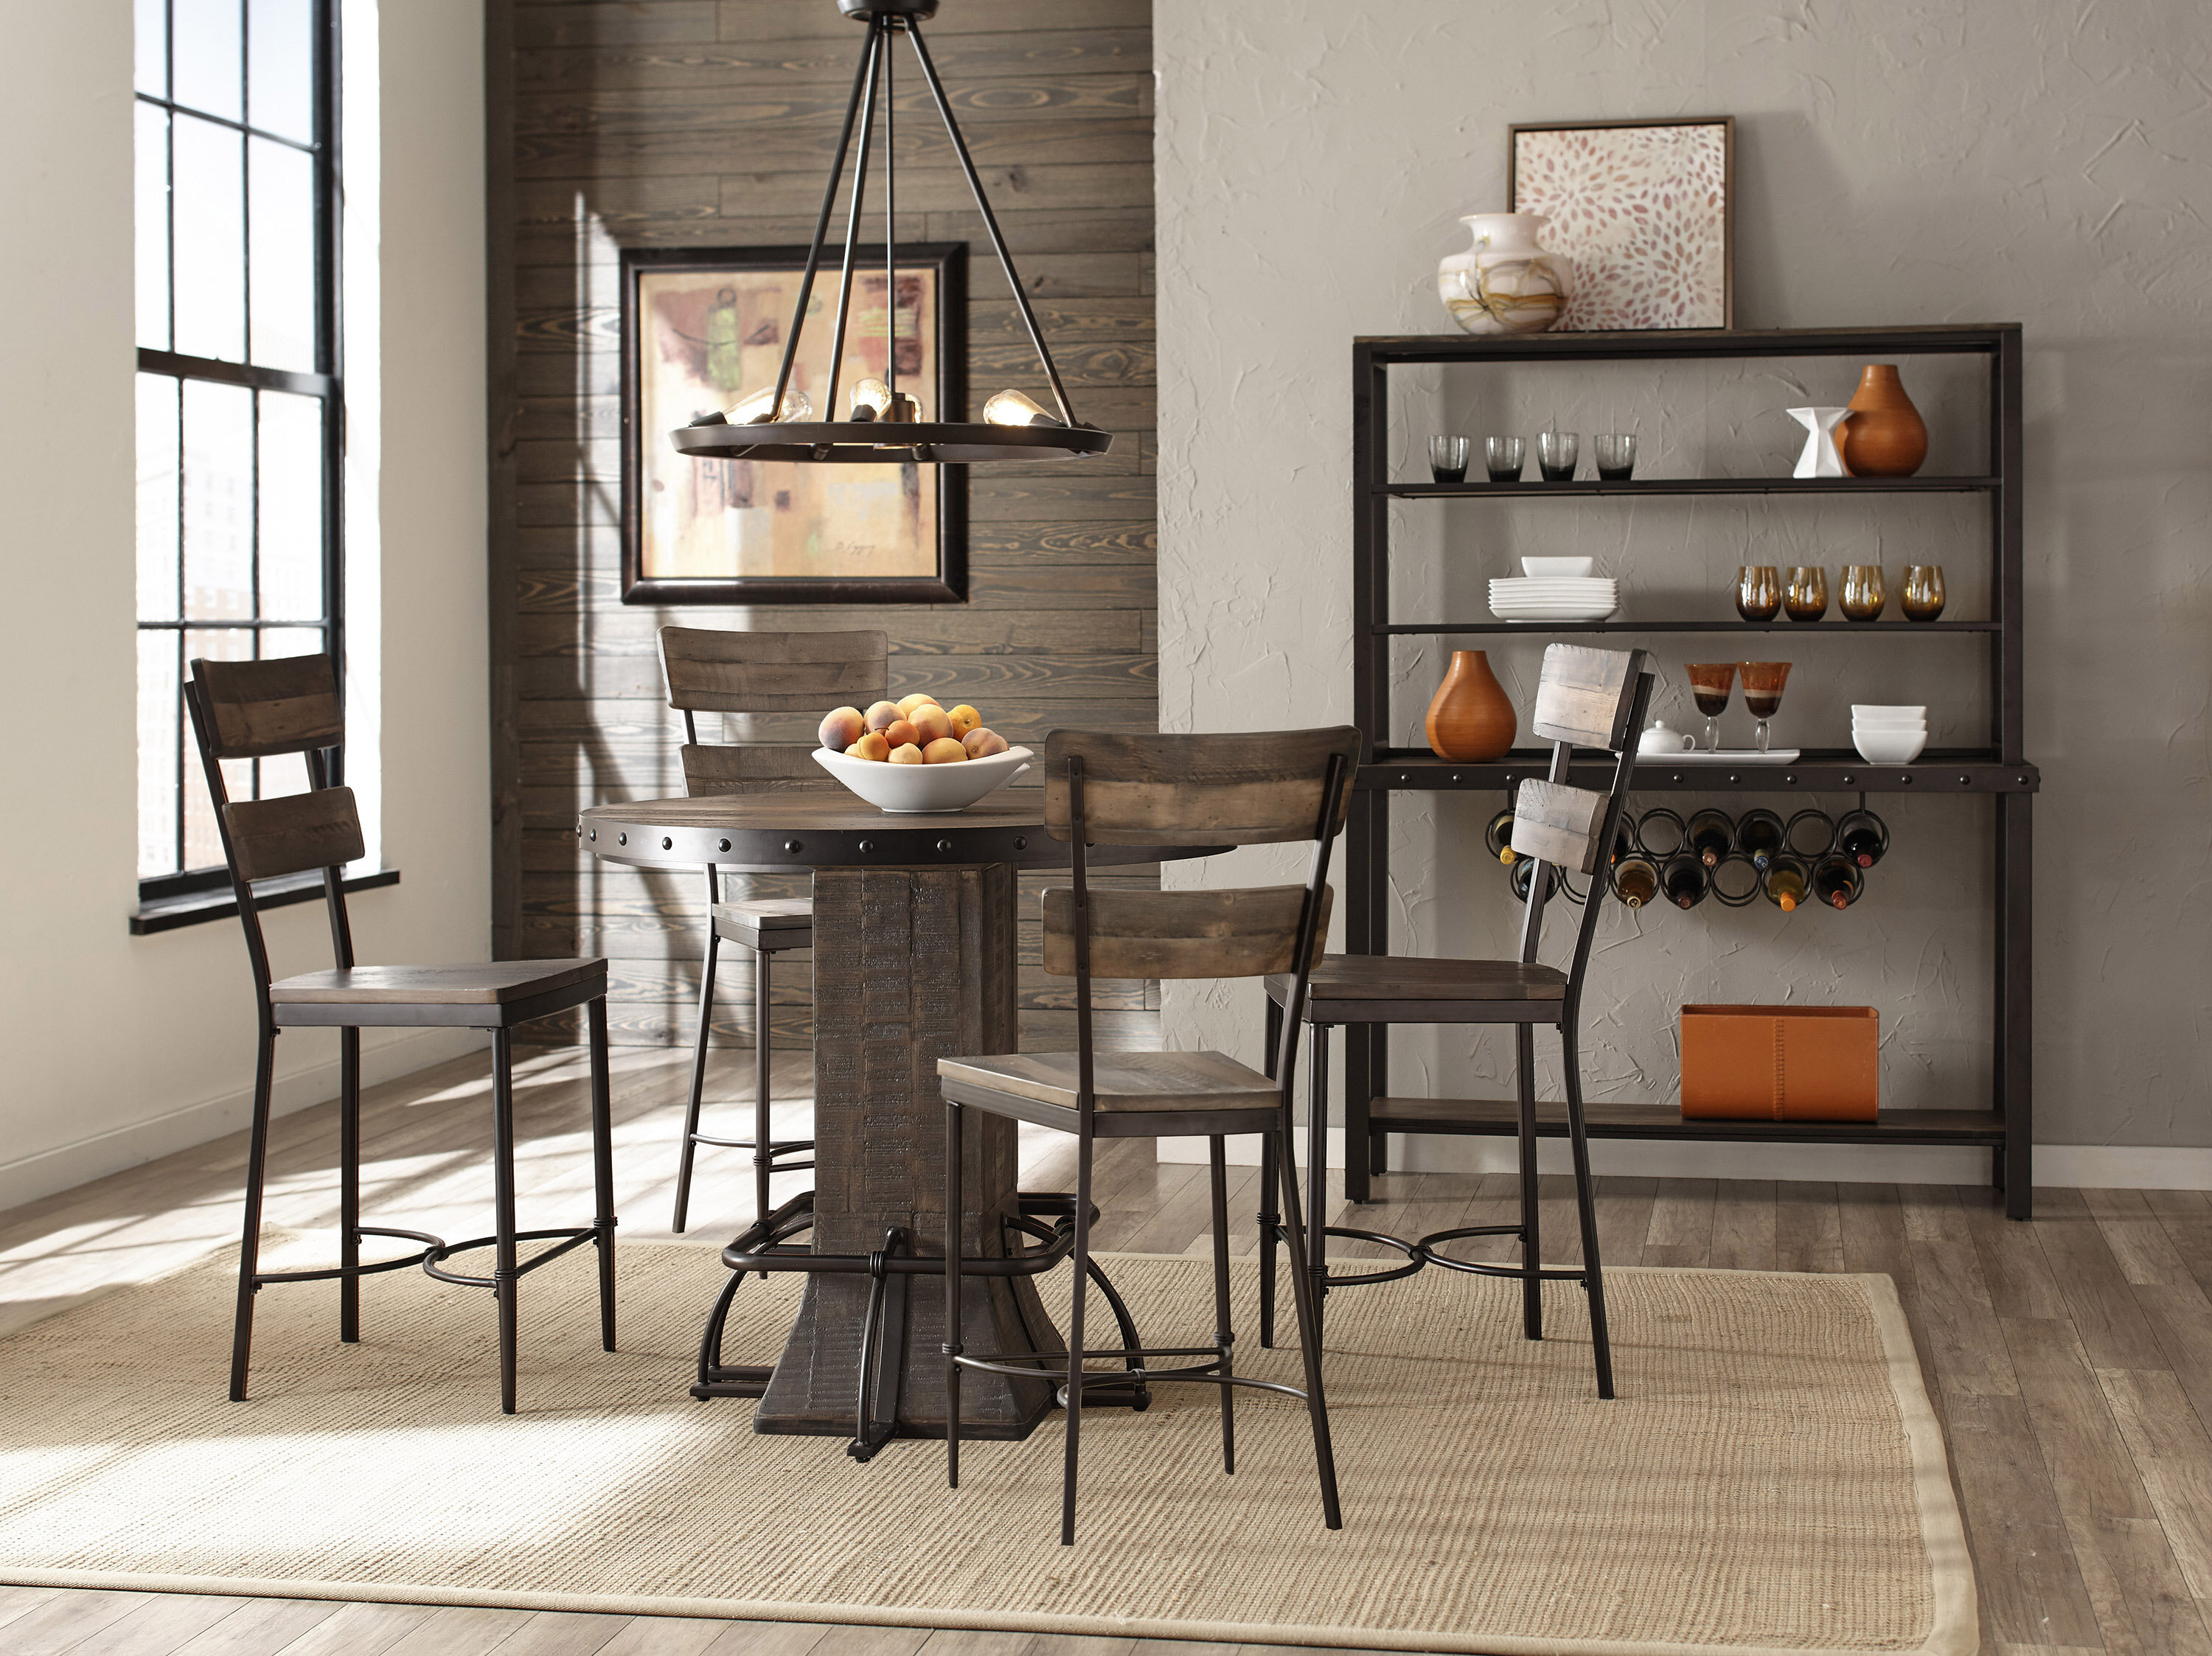 Gracie Oaks Cathie 5 Piece Round Wood Counter Height Dining Set | Wayfair